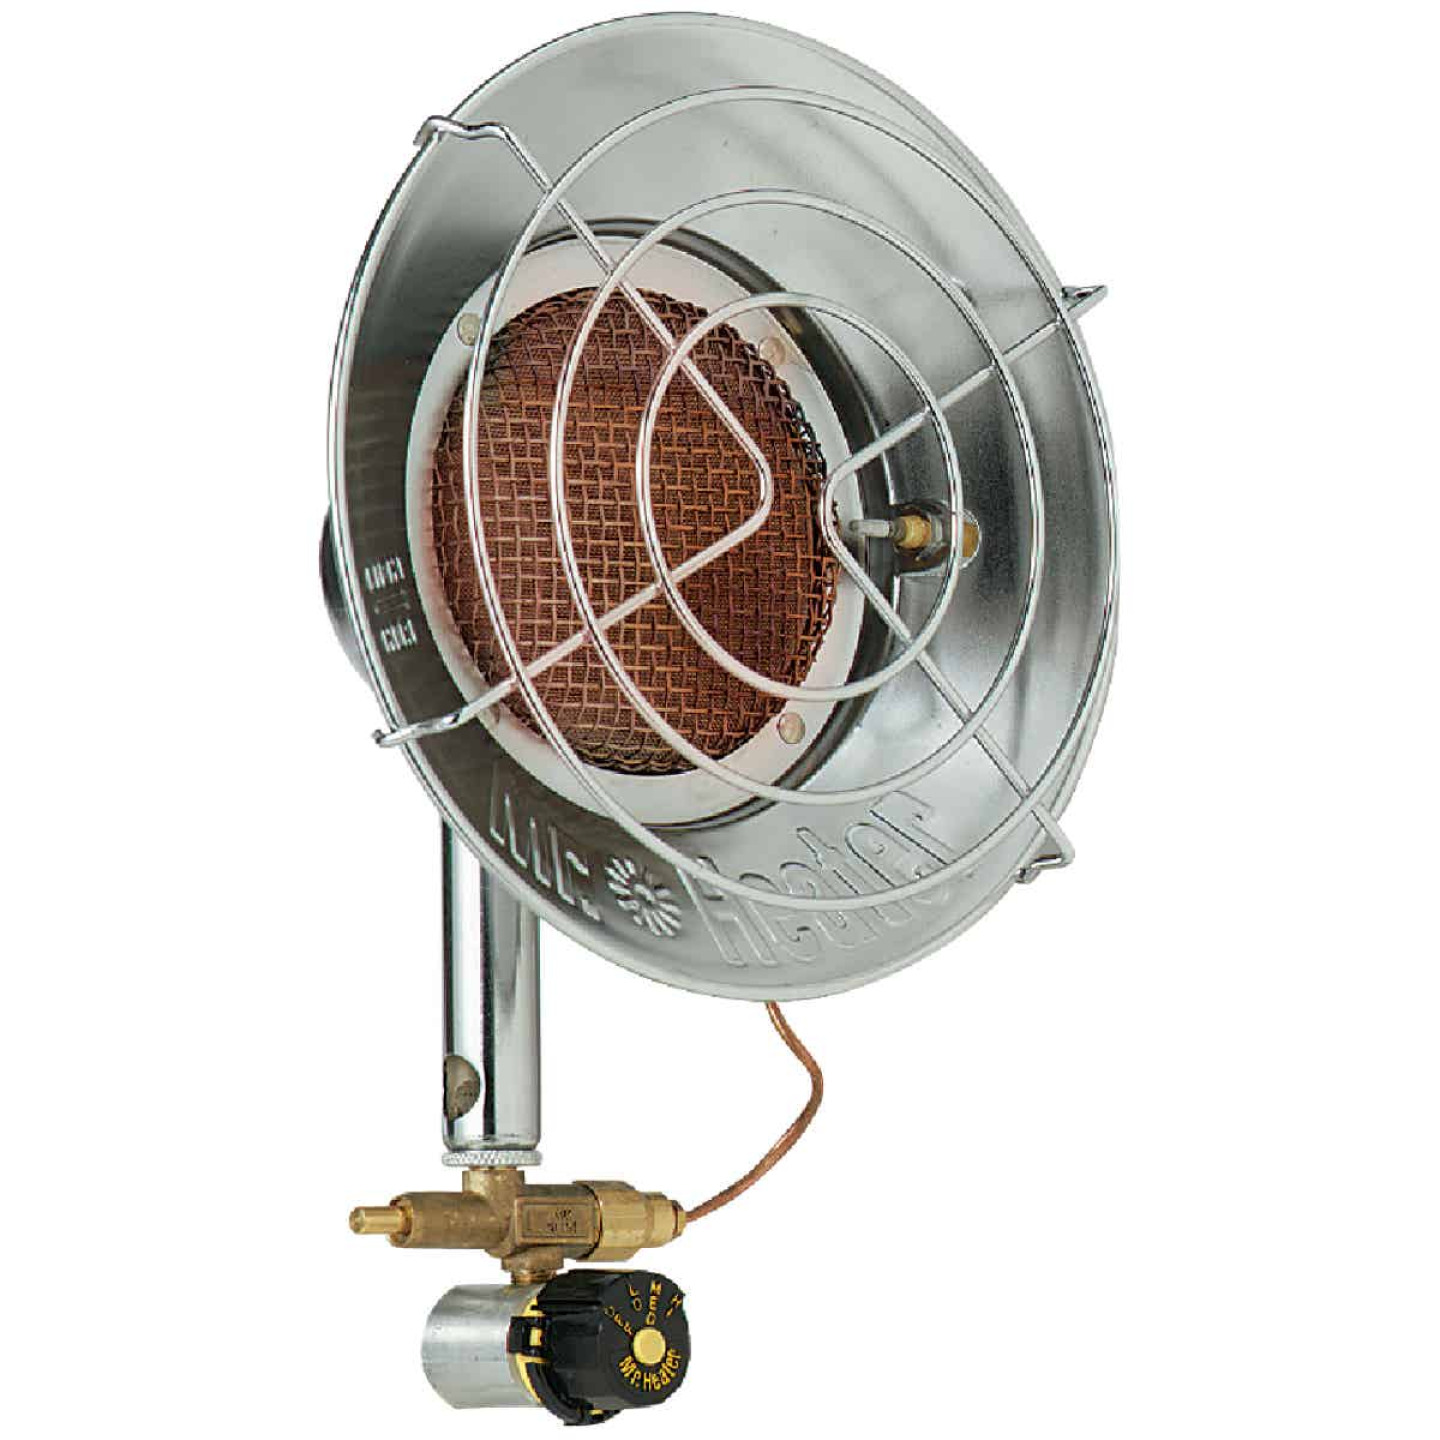 MR. HEATER 15,000 BTU Radiant Single Tank Top Propane Heater Image 1